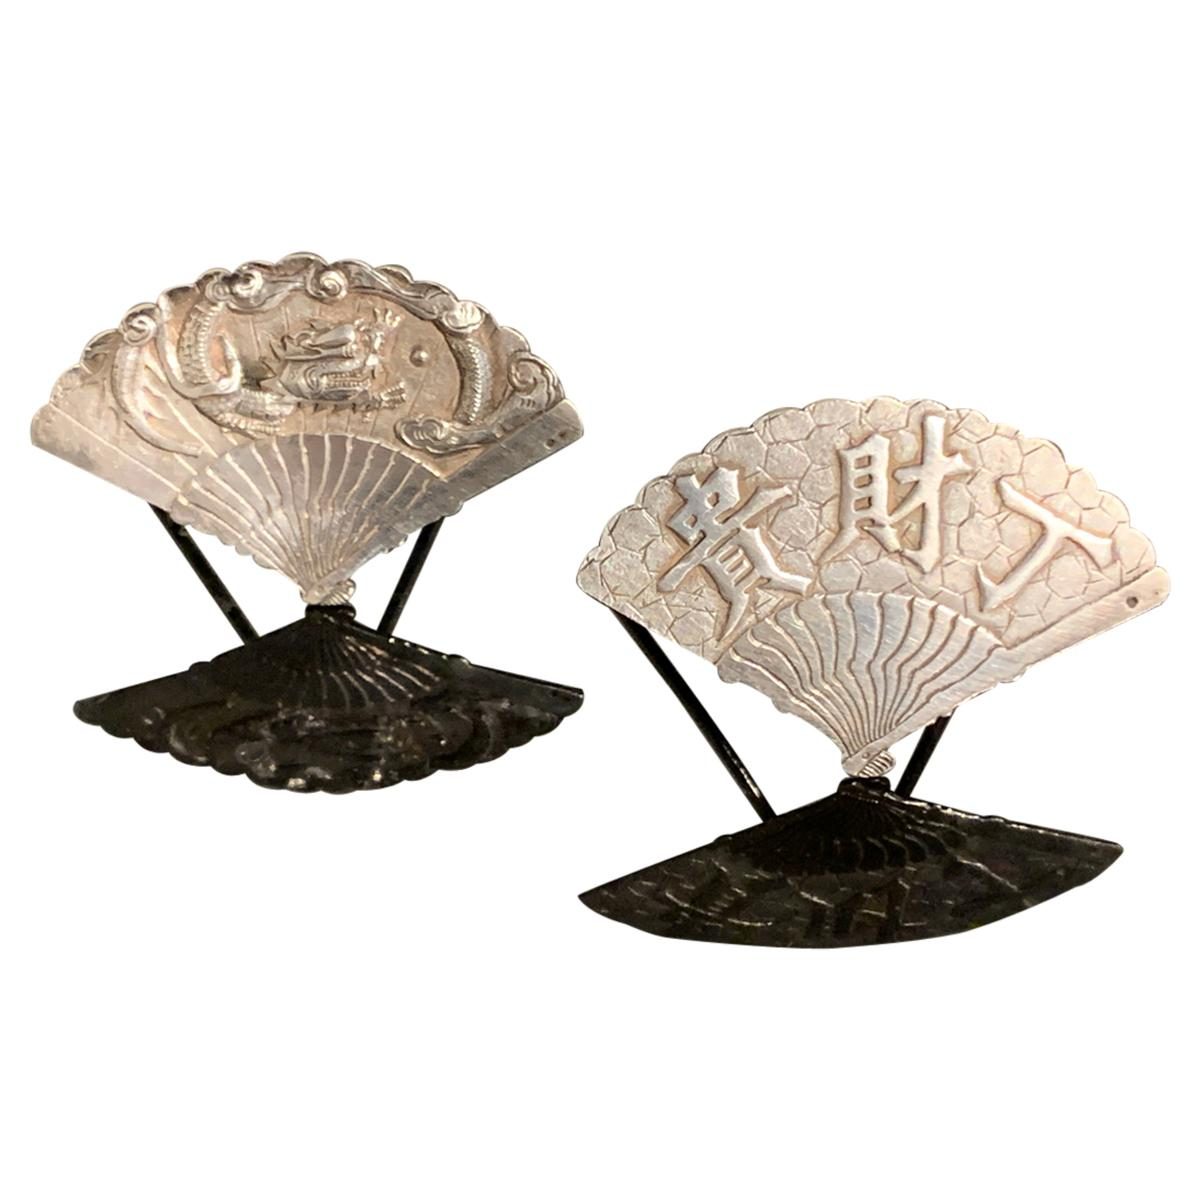 Two Chinese Export Silver Place Card Holders by Wang Hing, Early 20th Century